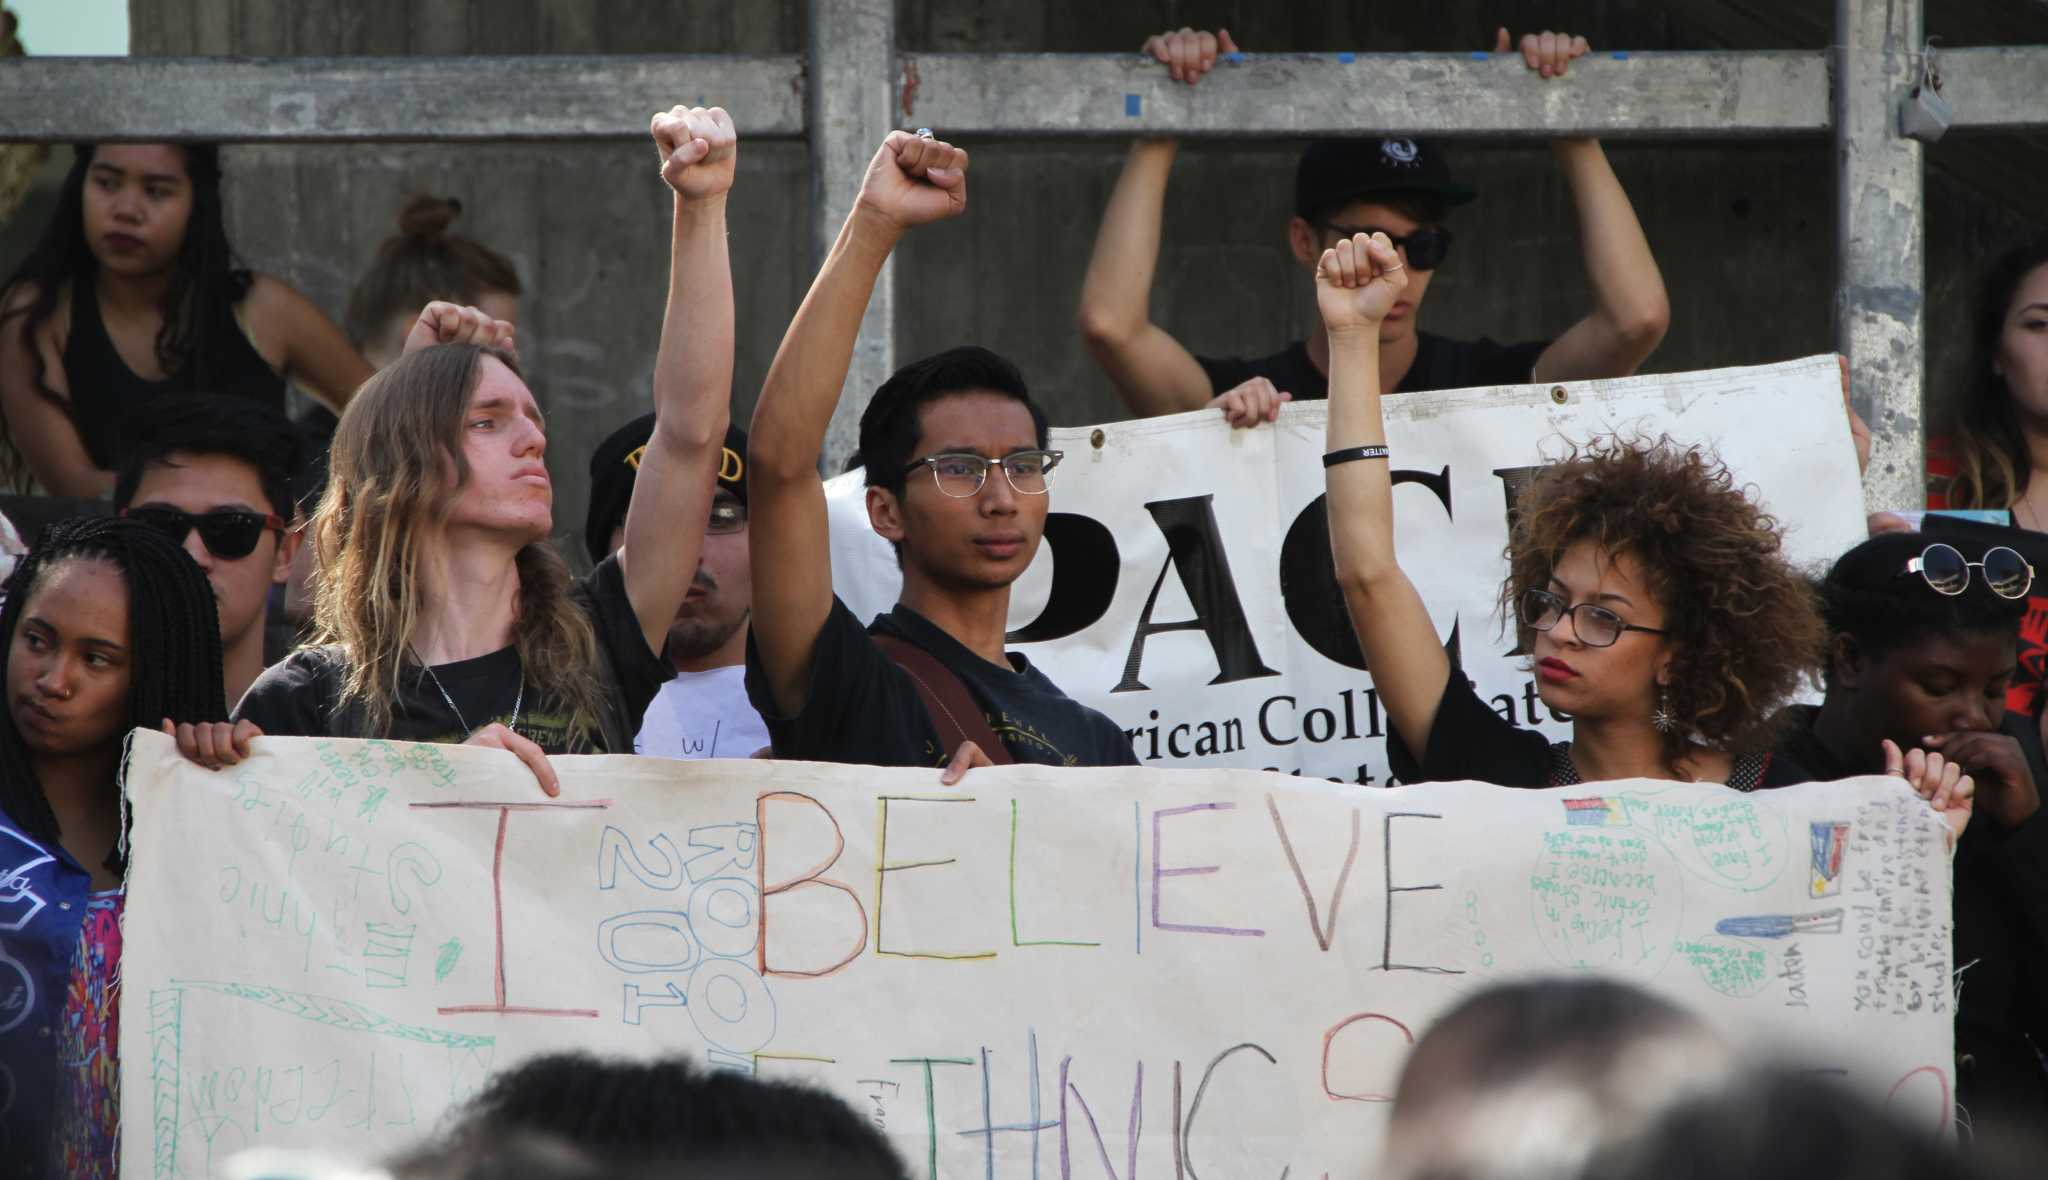 Seanan Kenney, Jon Ray Guevarra, and a fellow student raise their fists and hold a banner saying